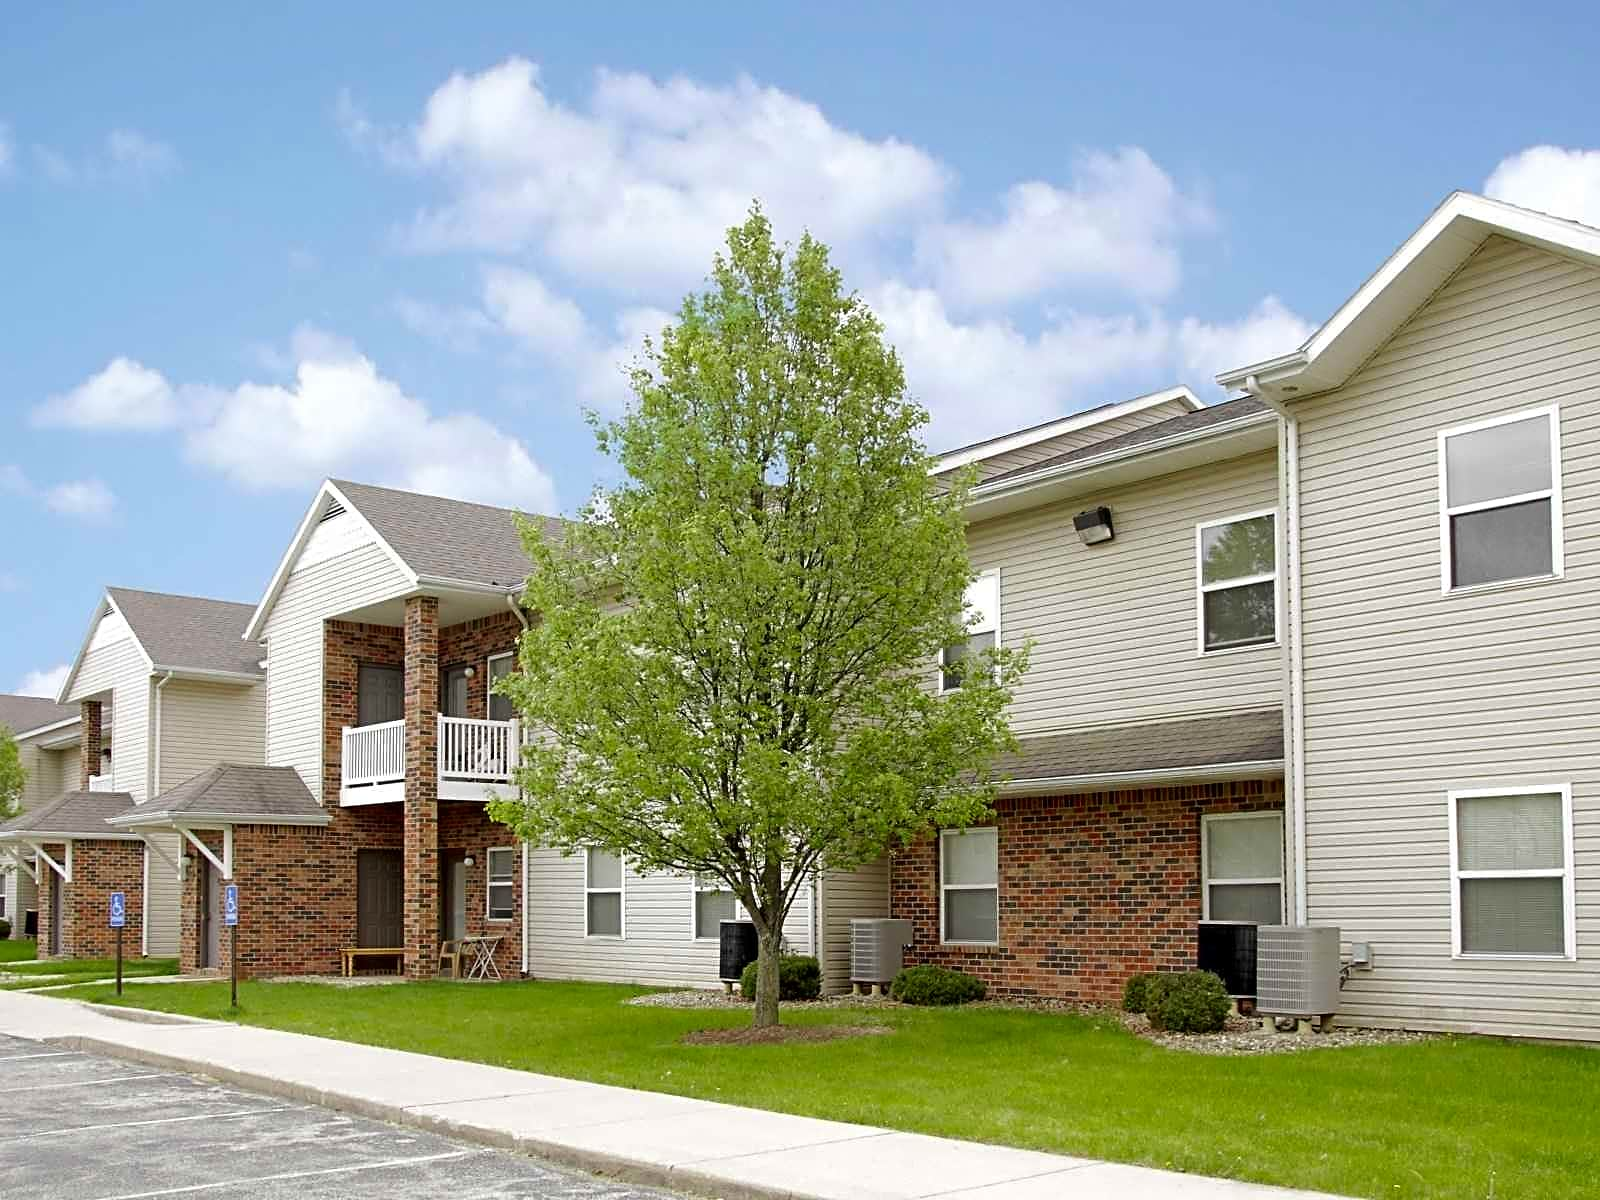 Apartments For Rent In Muncie Indiana Near Ball State